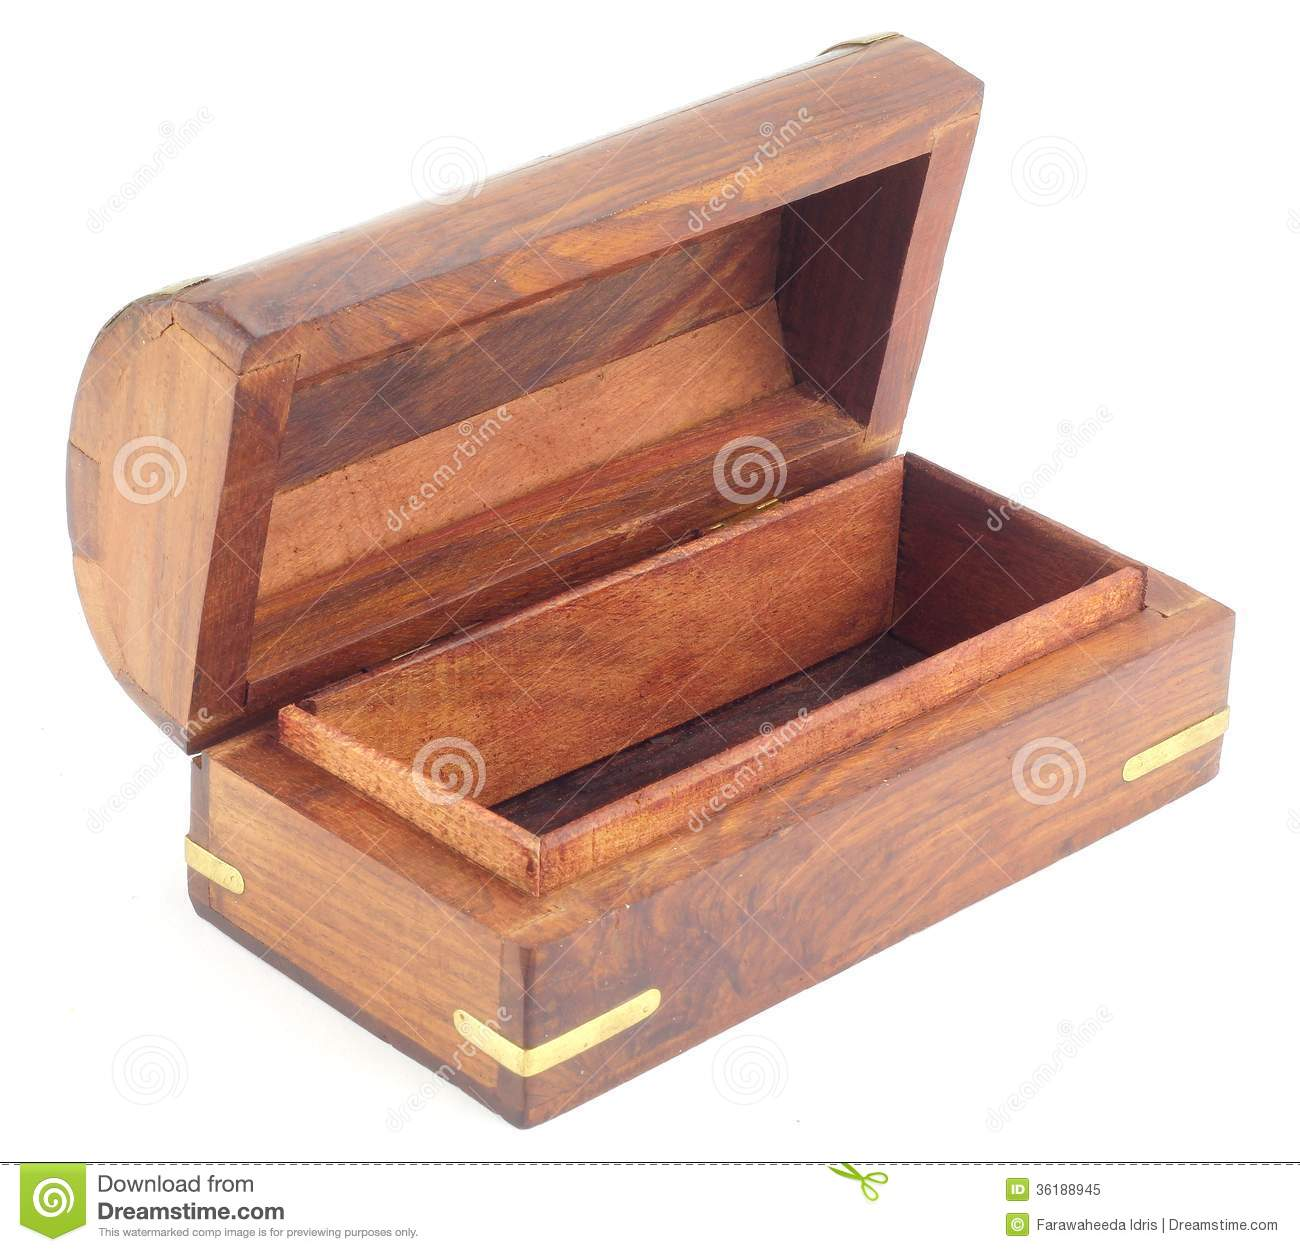 Hand crafted wooden treasure chests box royalty free stock for Handcrafted or hand crafted